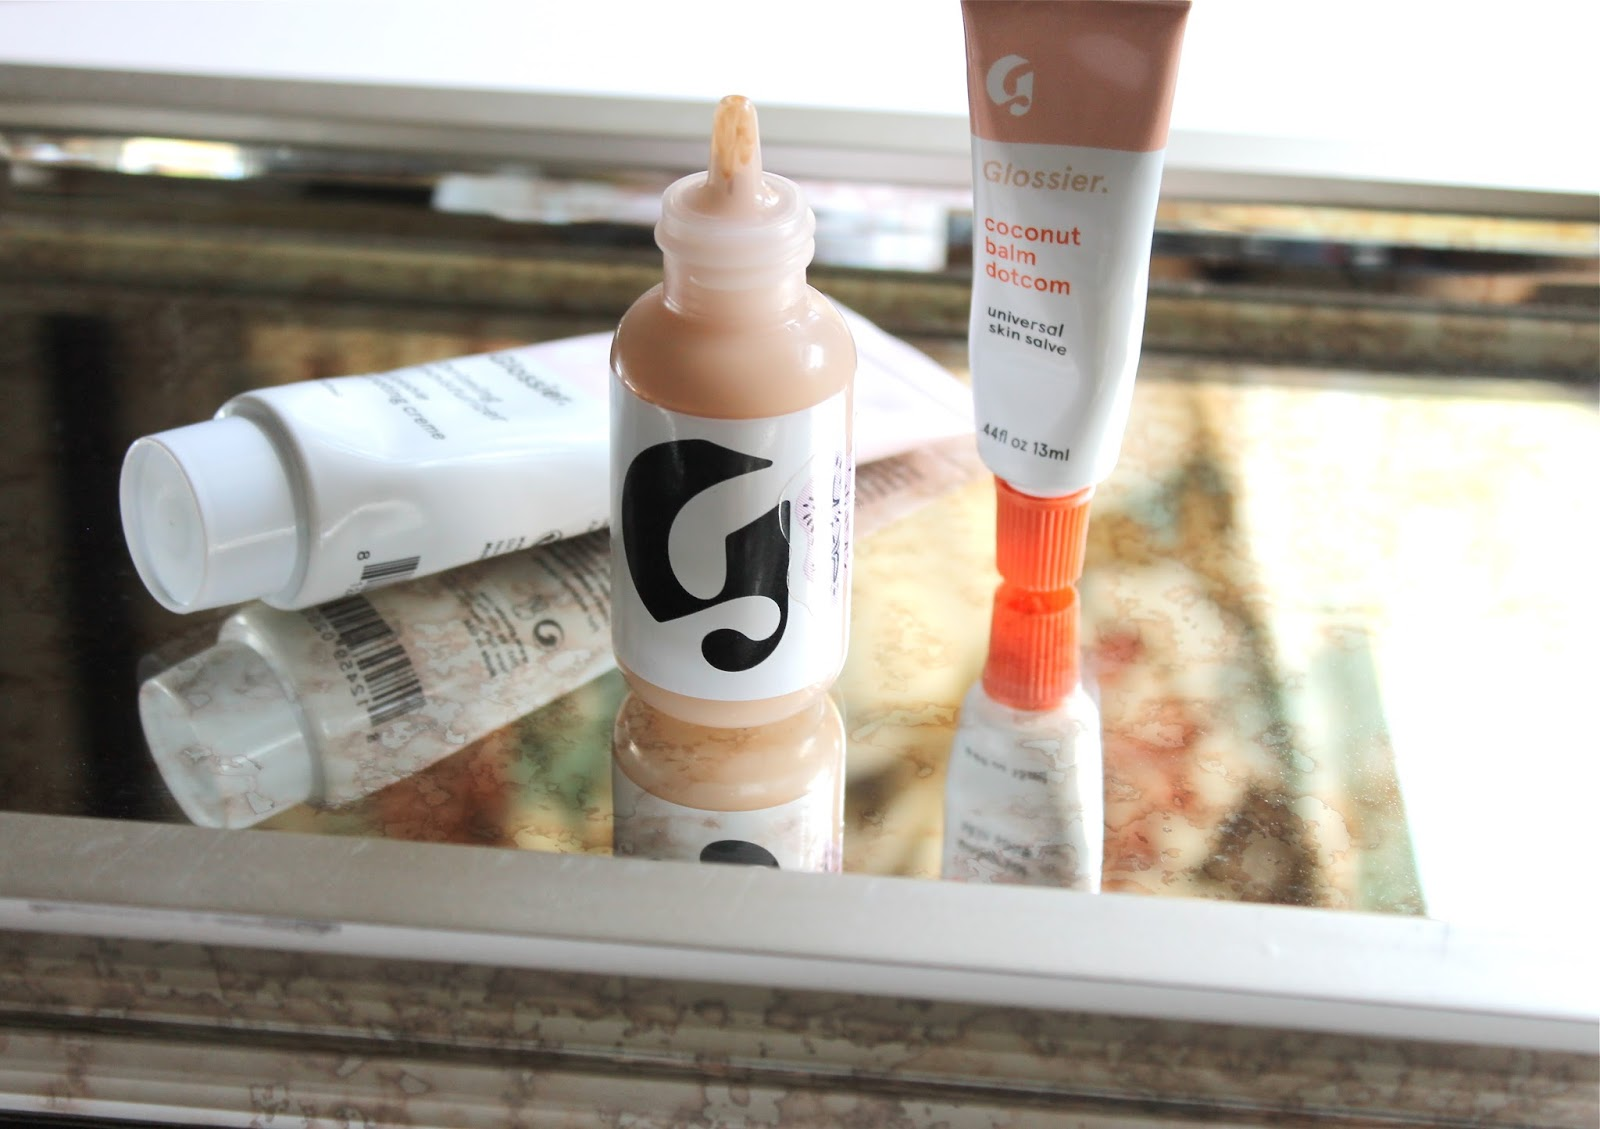 LAZY DAY FAVORITES FROM GLOSSIER